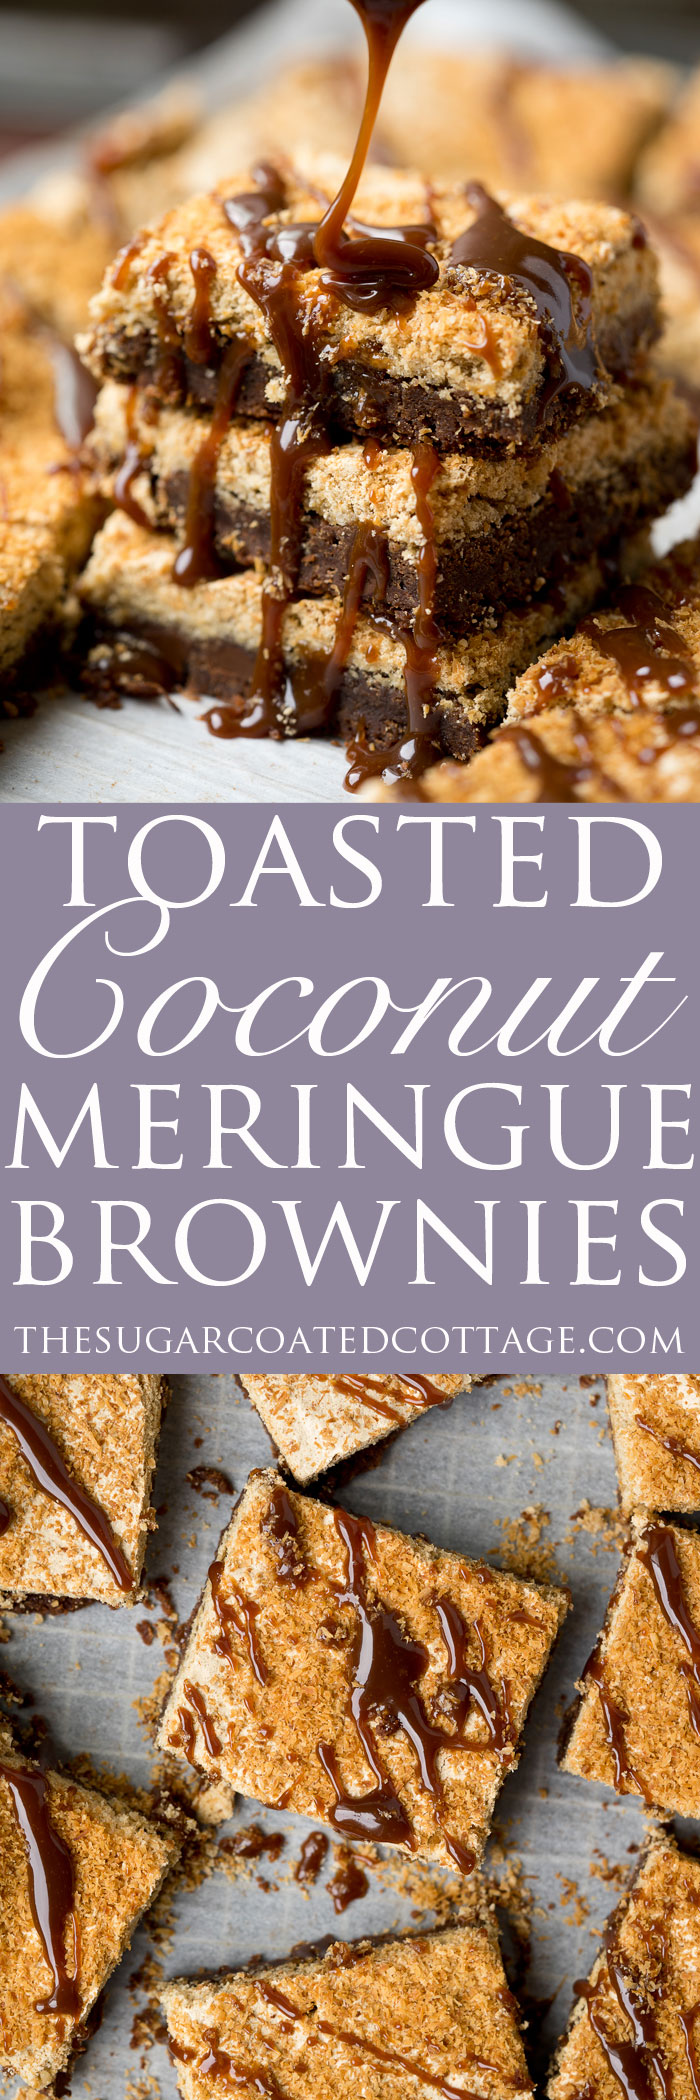 Dreamy Toasted Coconut Meringue Brownies! The only brownie recipe you need! Chocolatey, fudgey, chocolate chip studded brownie topped with a crisp, rich layer of brown sugar coconut meringue.